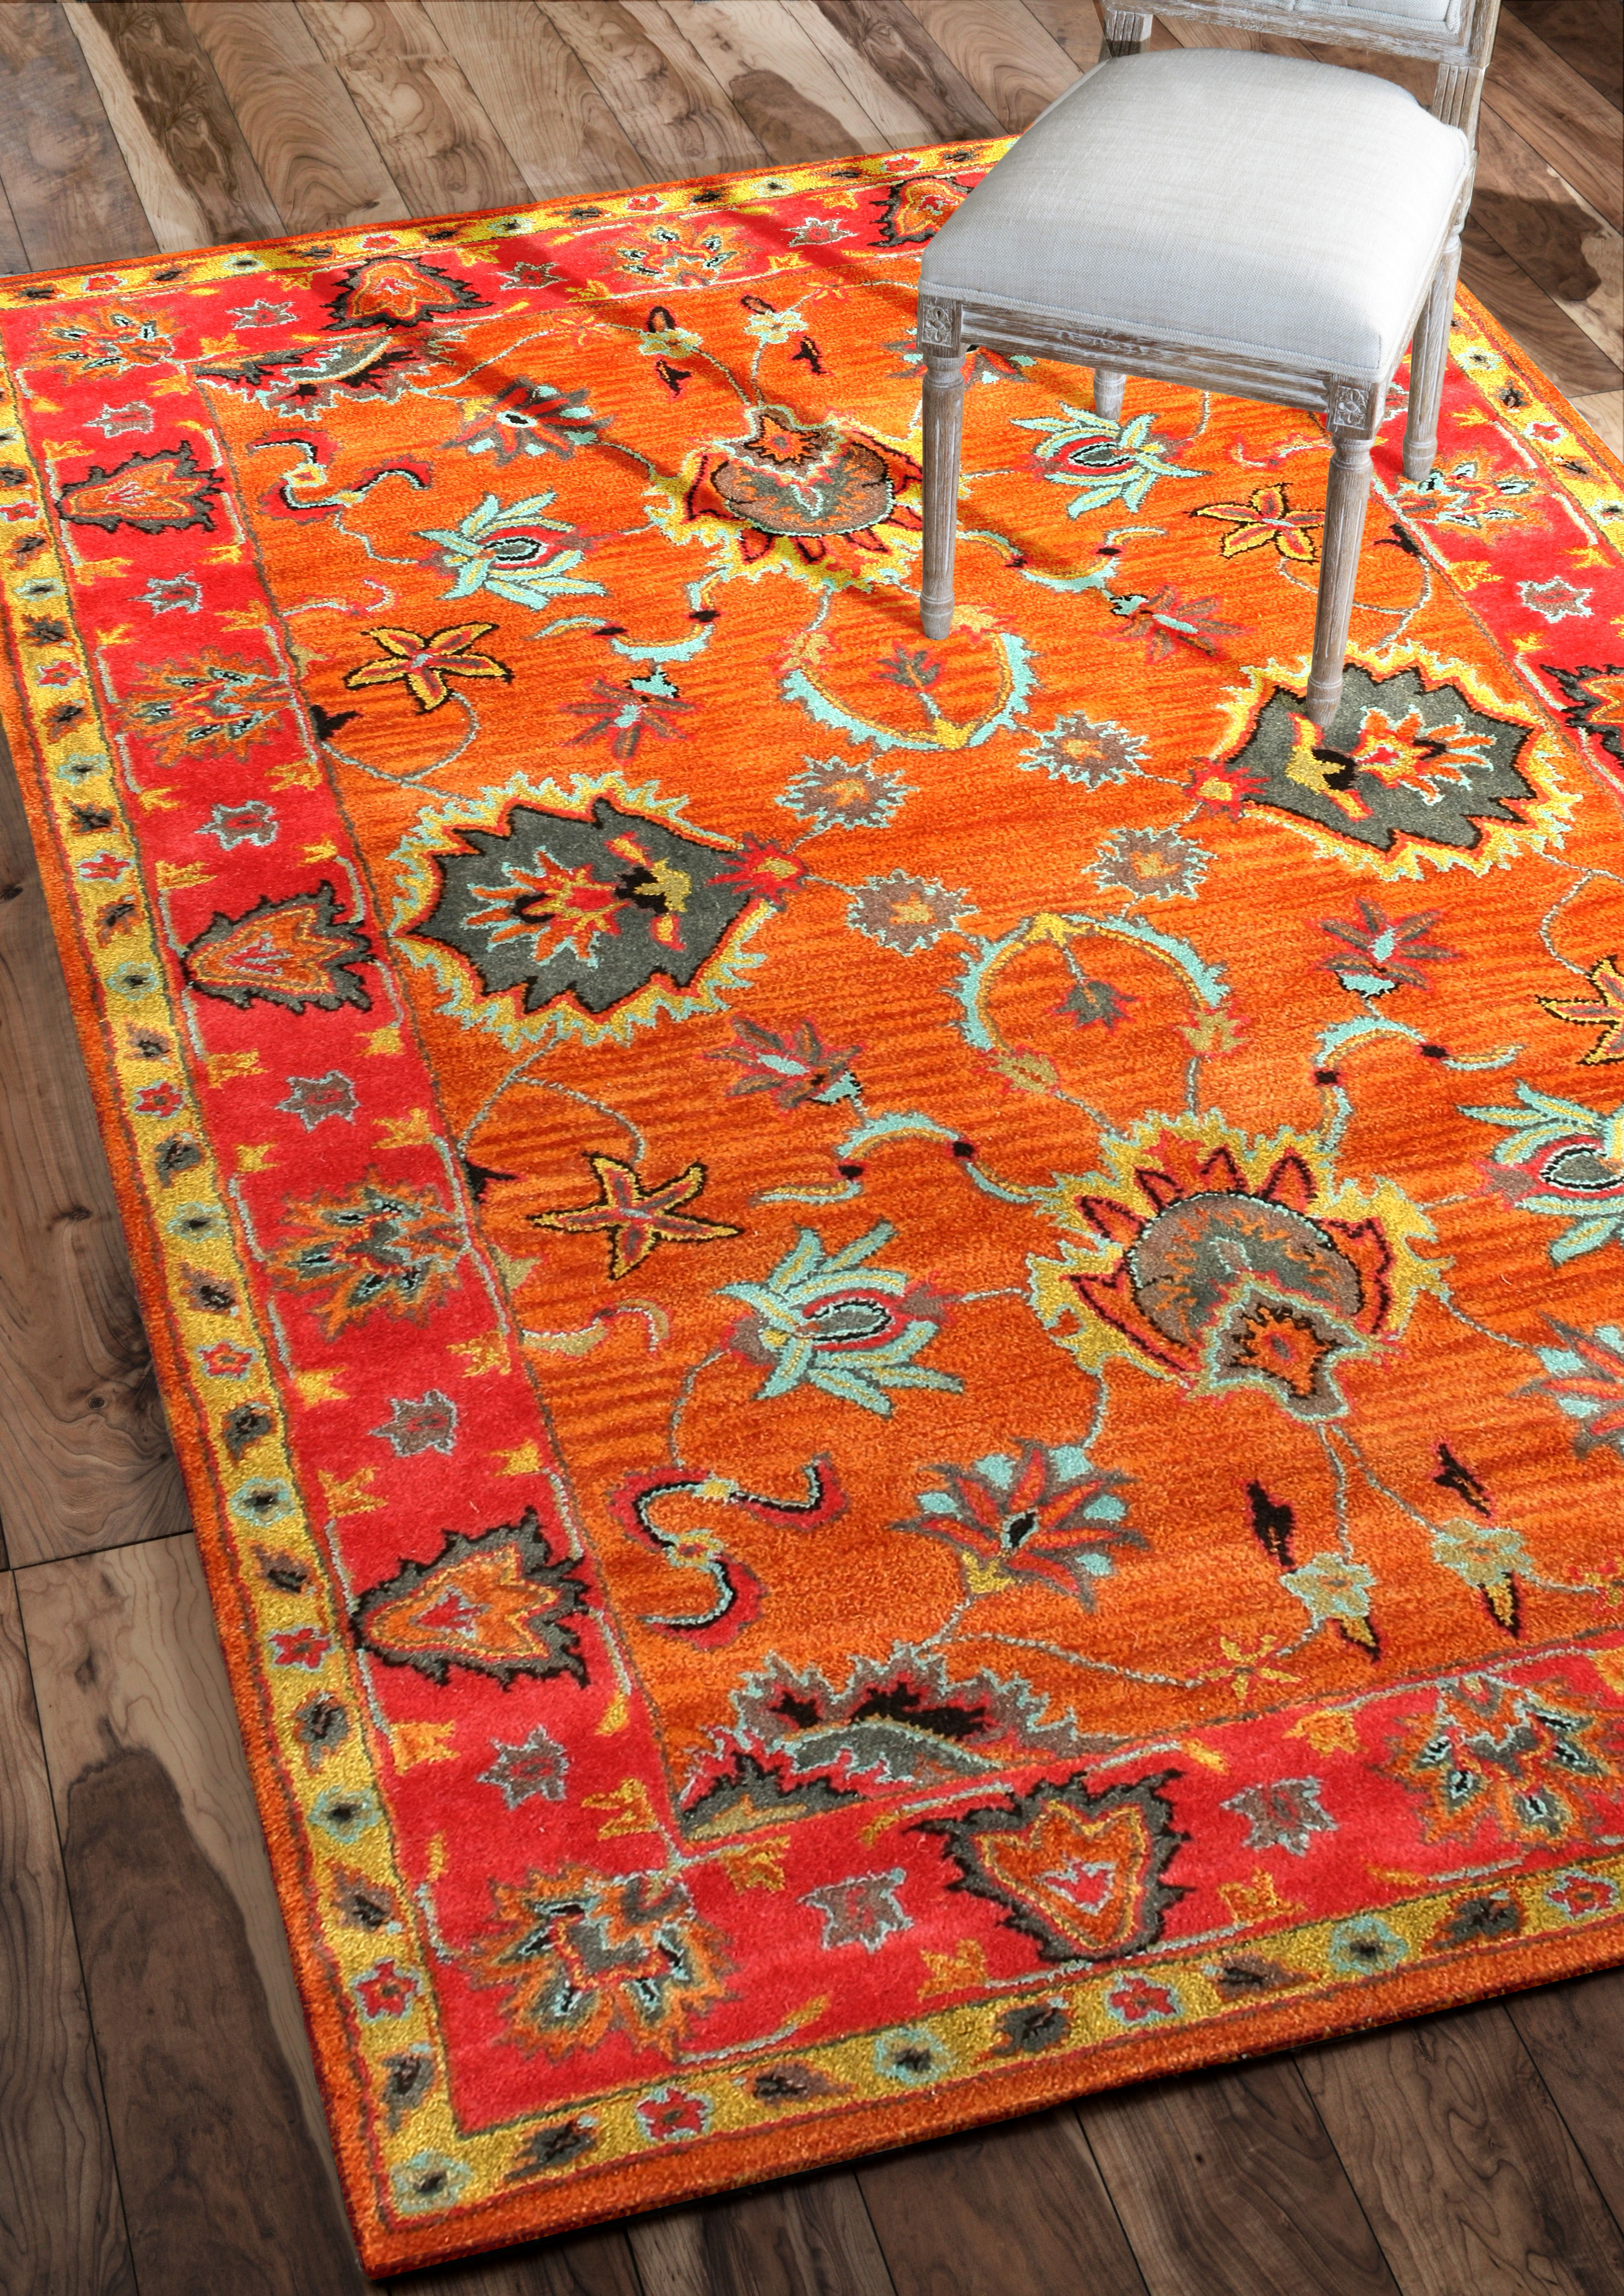 Rugs Usa Overdye Re21 Green Rug Rugs Usa Summer Sale Up To 80 Off Area Rug Carpet Design Style Home Decor Interi Orange Rugs Eclectic Area Rug Rugs Usa